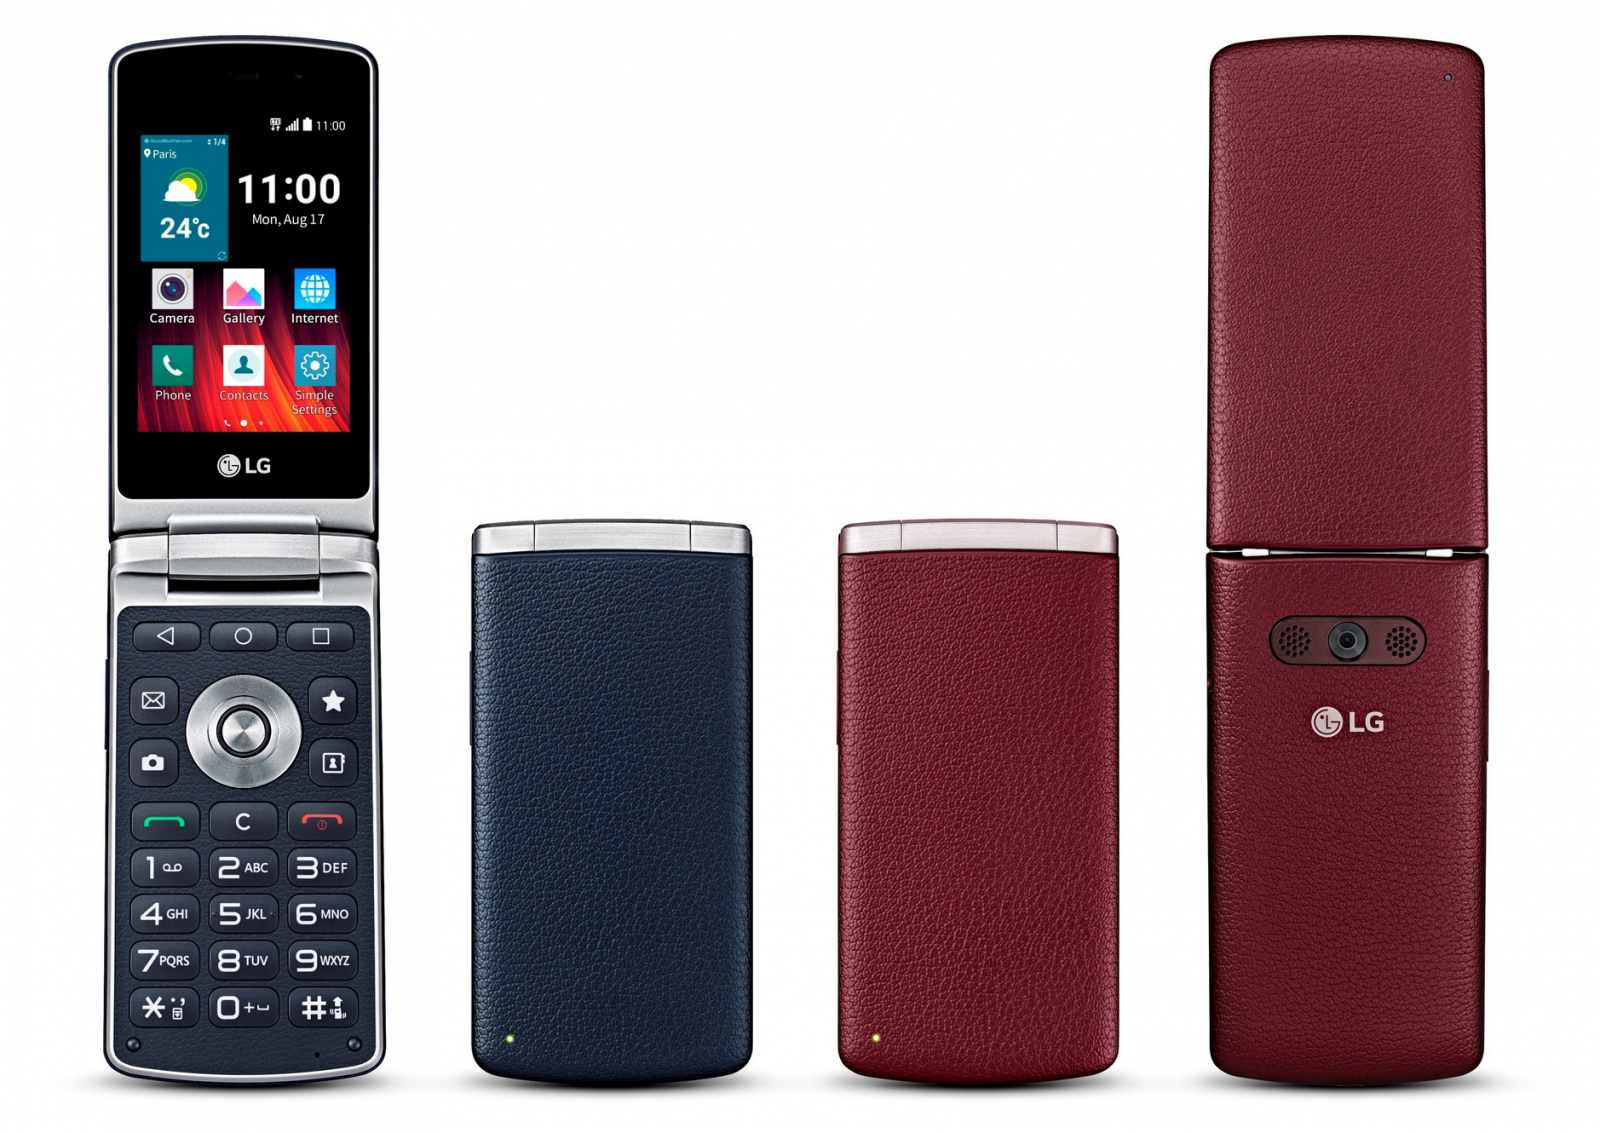 LG Wine Smart Flip Phone UK launch